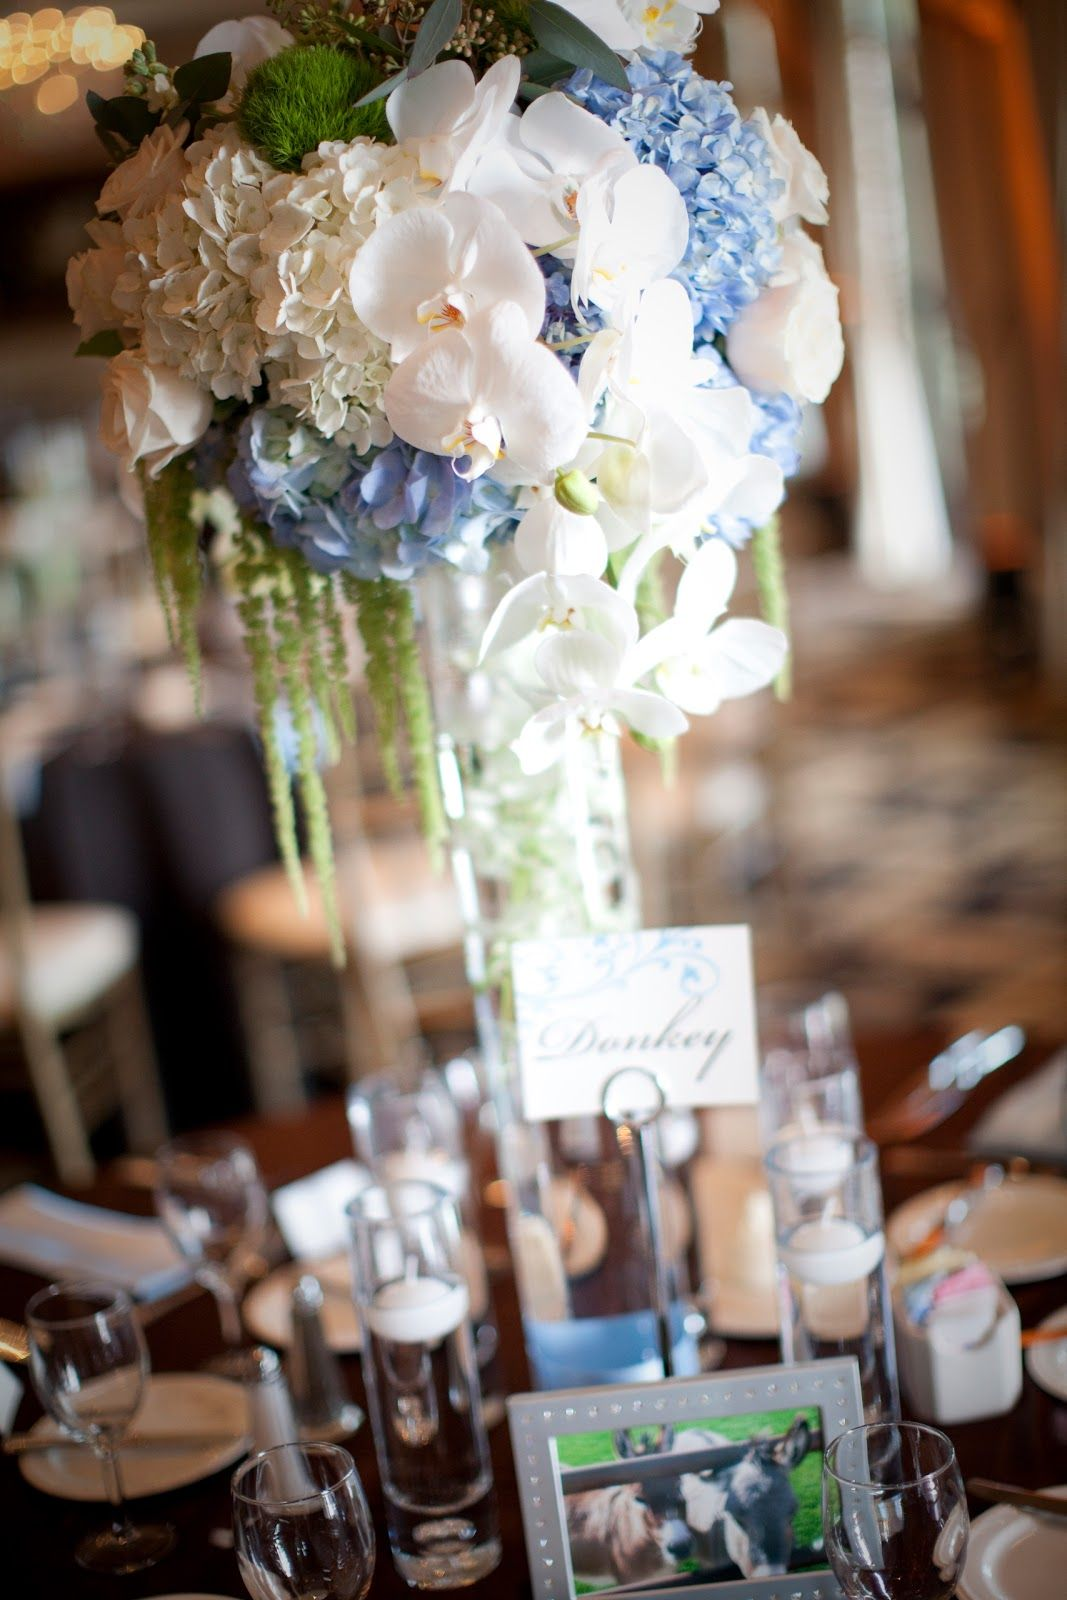 Blue and white wedding decor  SWOONING OVER THESE FABULOUS WEDDING FLOWER IDEAS FROM HEAVENLY